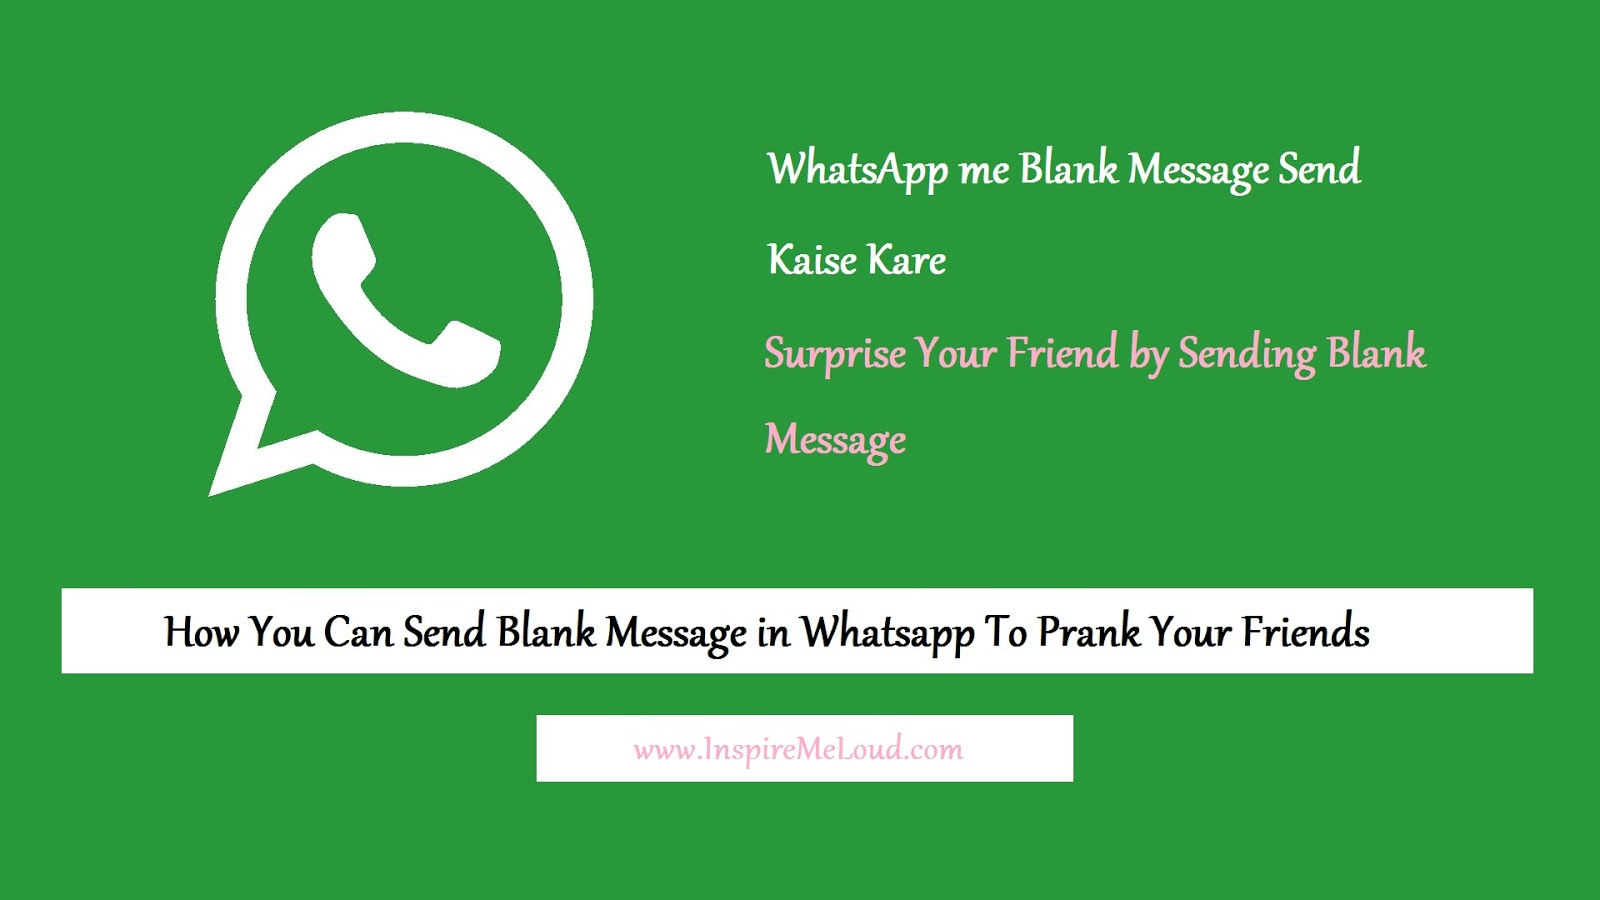 WhatsApp Me Blank Message Send Kaise Kare